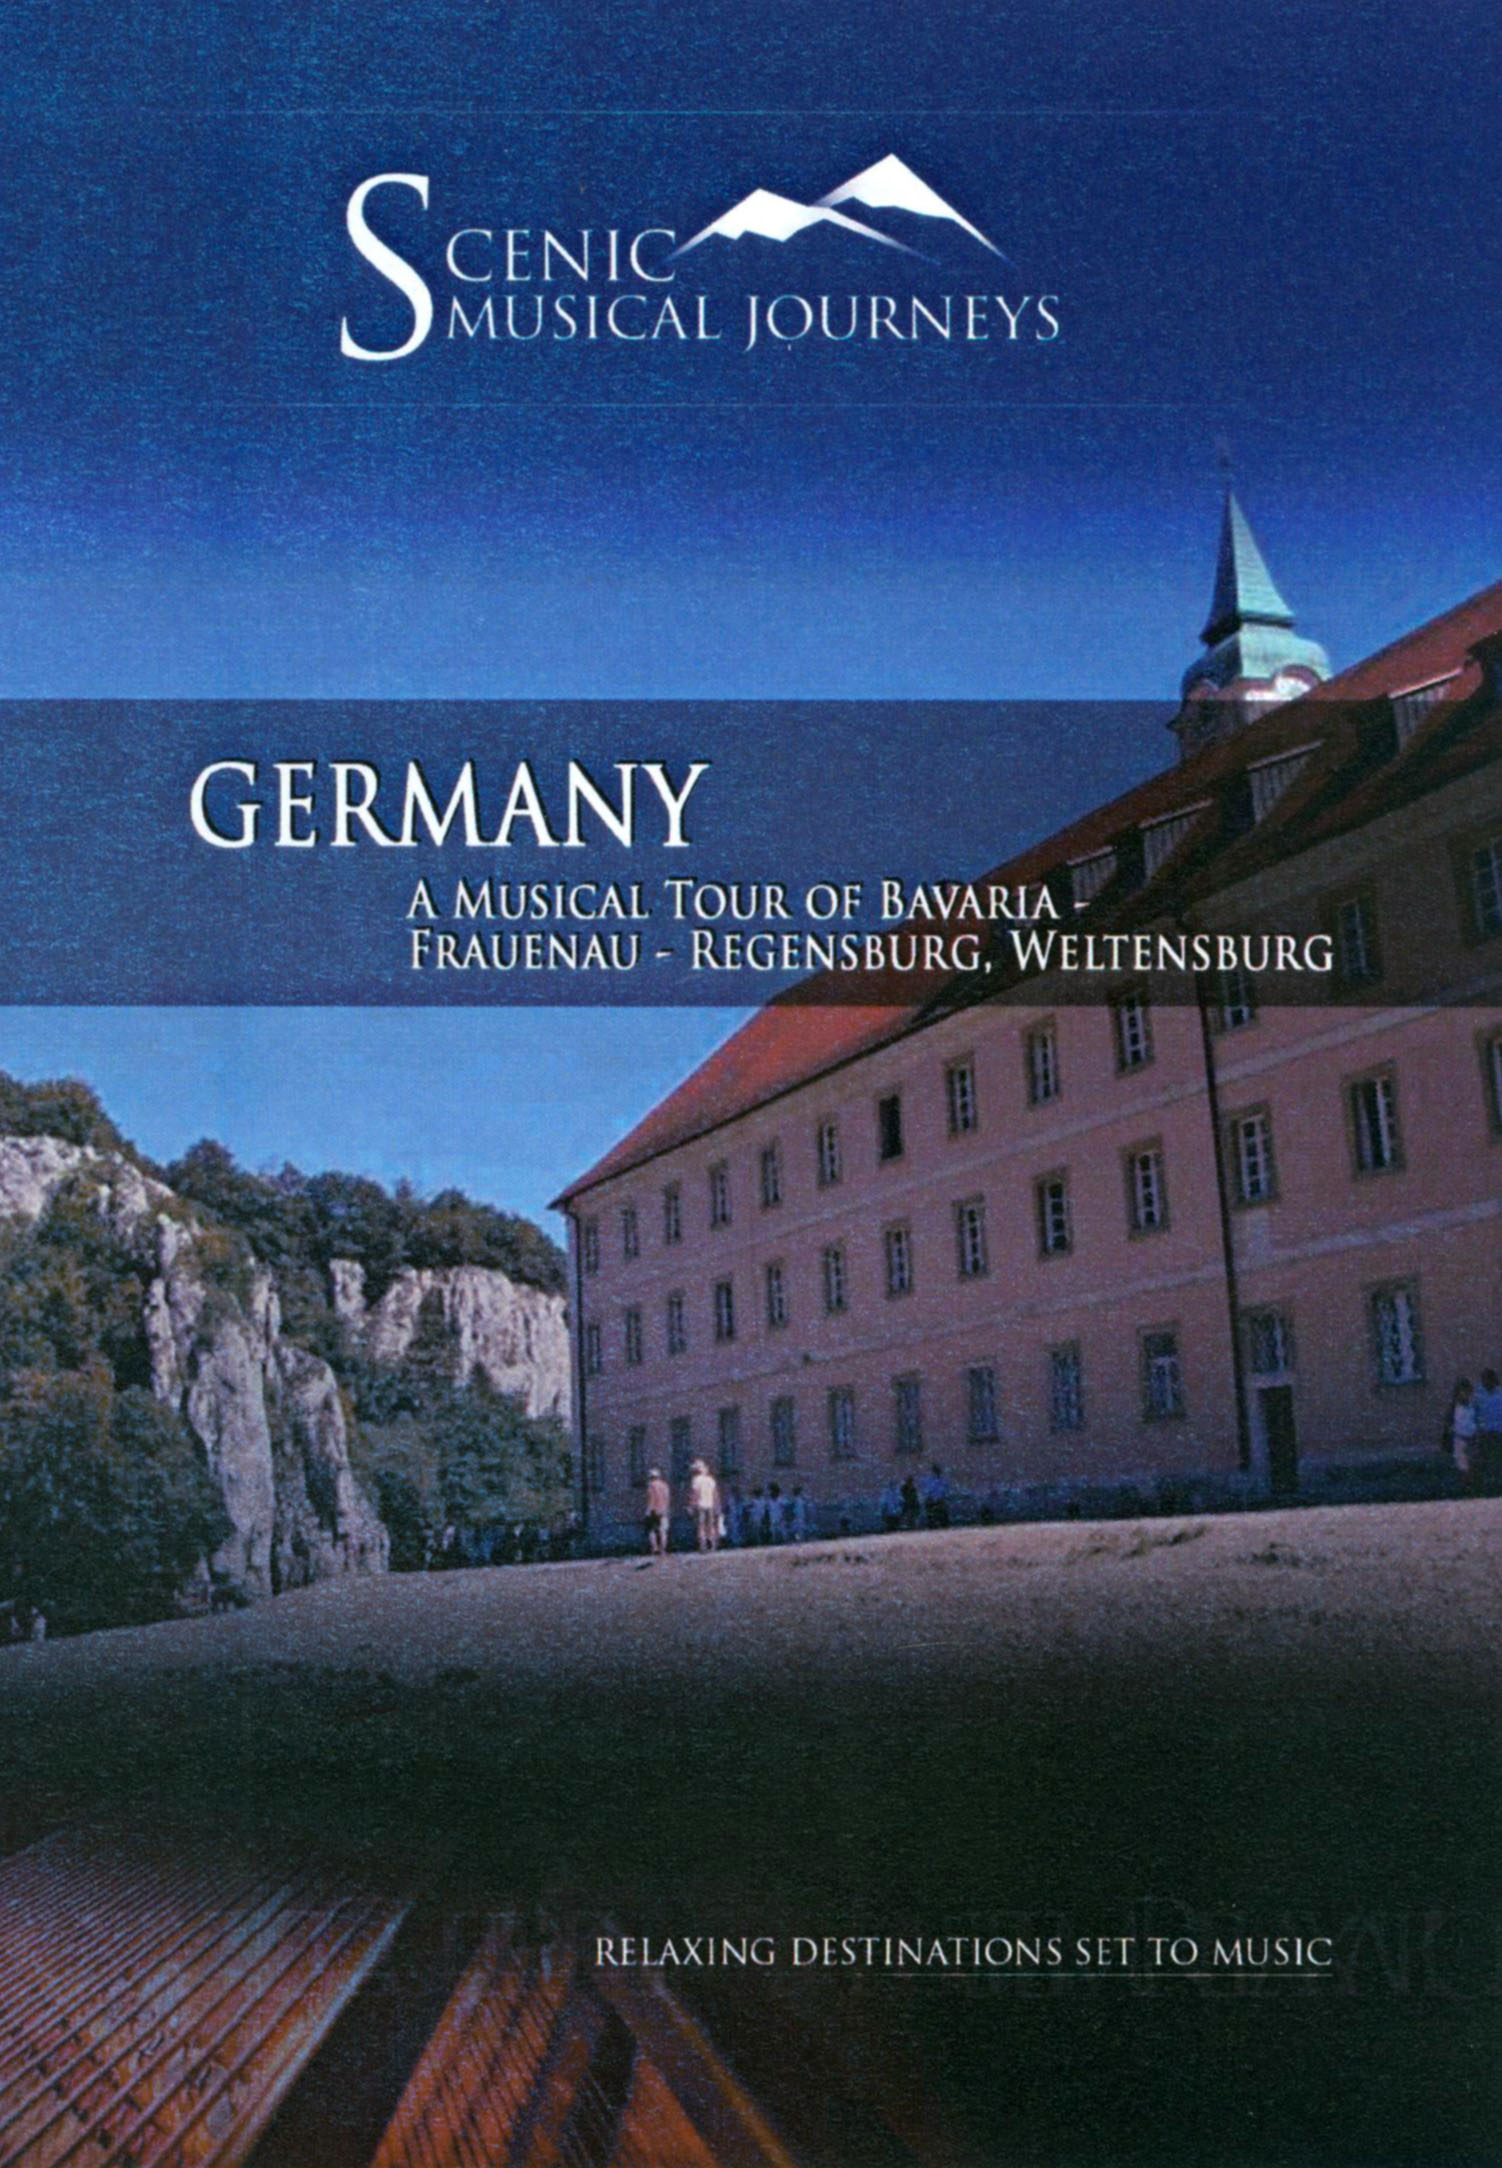 Scenic Musical Journeys: Germany - A Musical Tour of Bavaria - Frauenau - Regensburg, Weltensburg